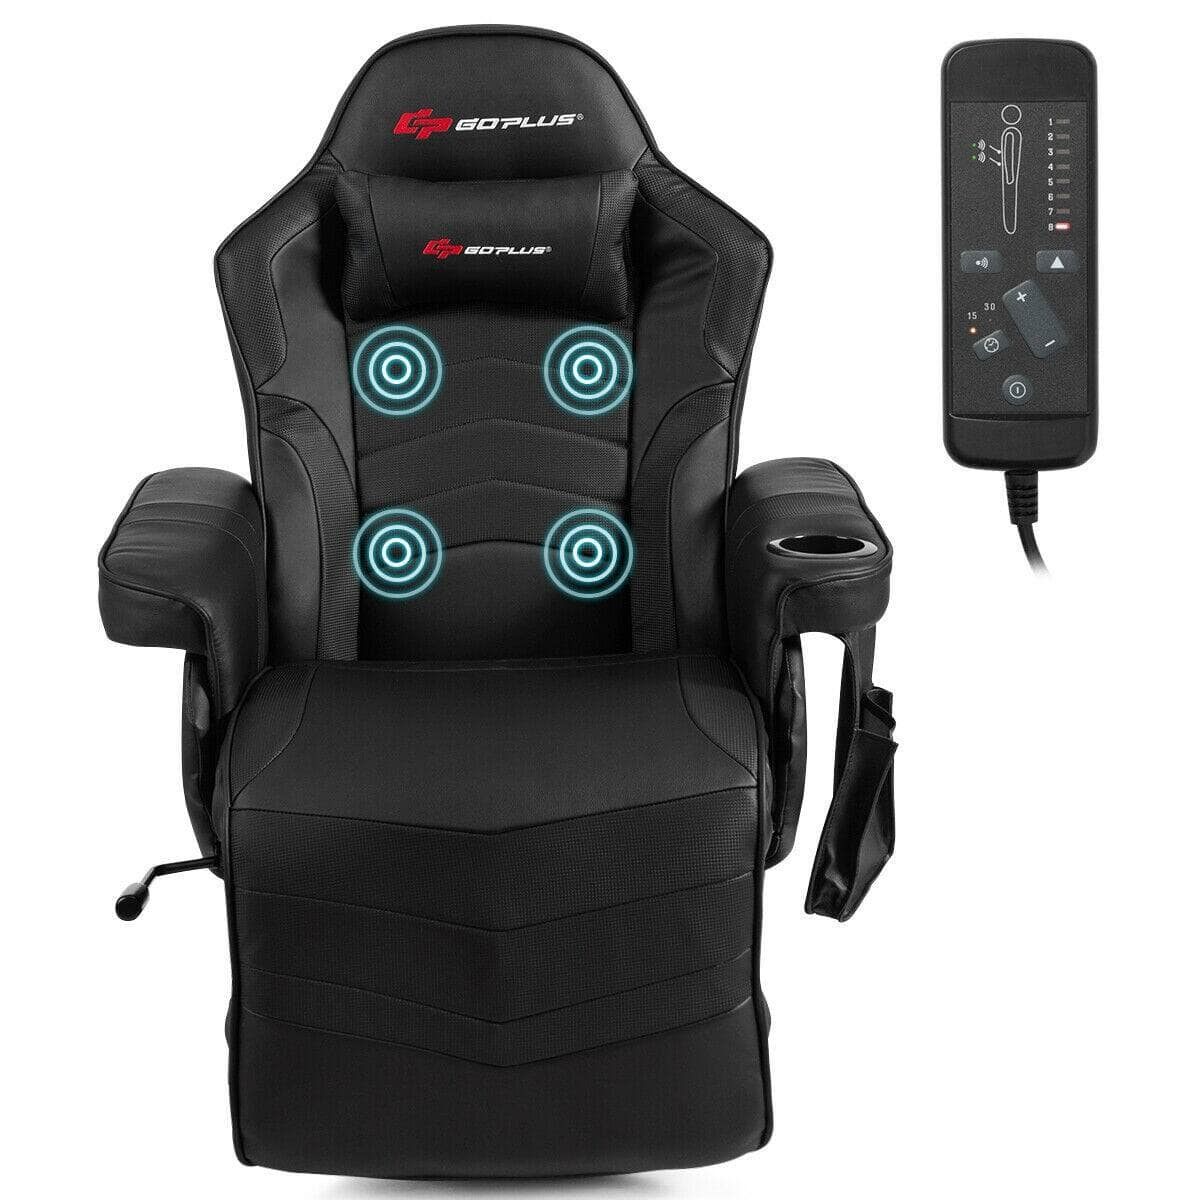 Costway Ergonomic High Back Massage Gaming Chair with Pillow for $269.95 + FS